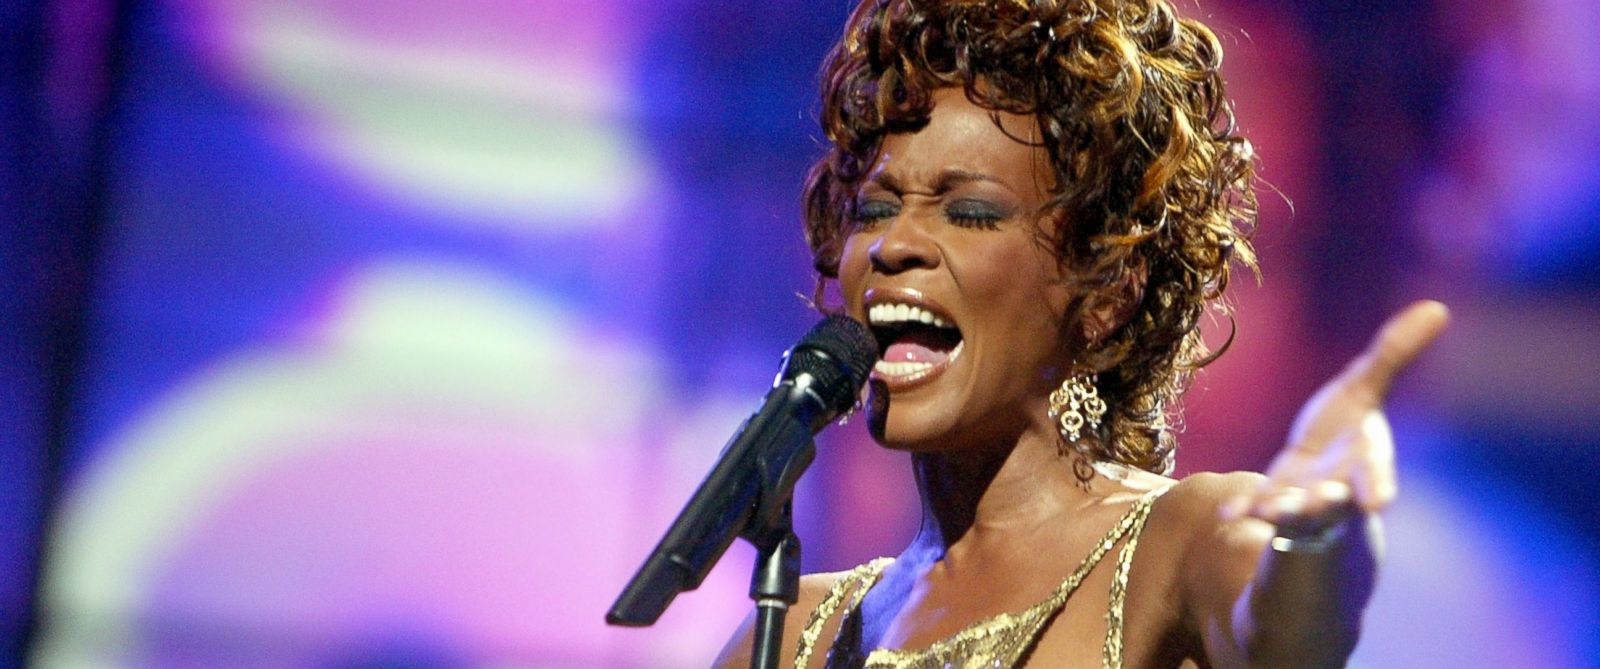 PHOTO: Whitney Houston is seen performing on stage during the 2004 World Music Awards at the Thomas and Mack Center, Sept. 15, 2004, in Las Vegas, Nevada.